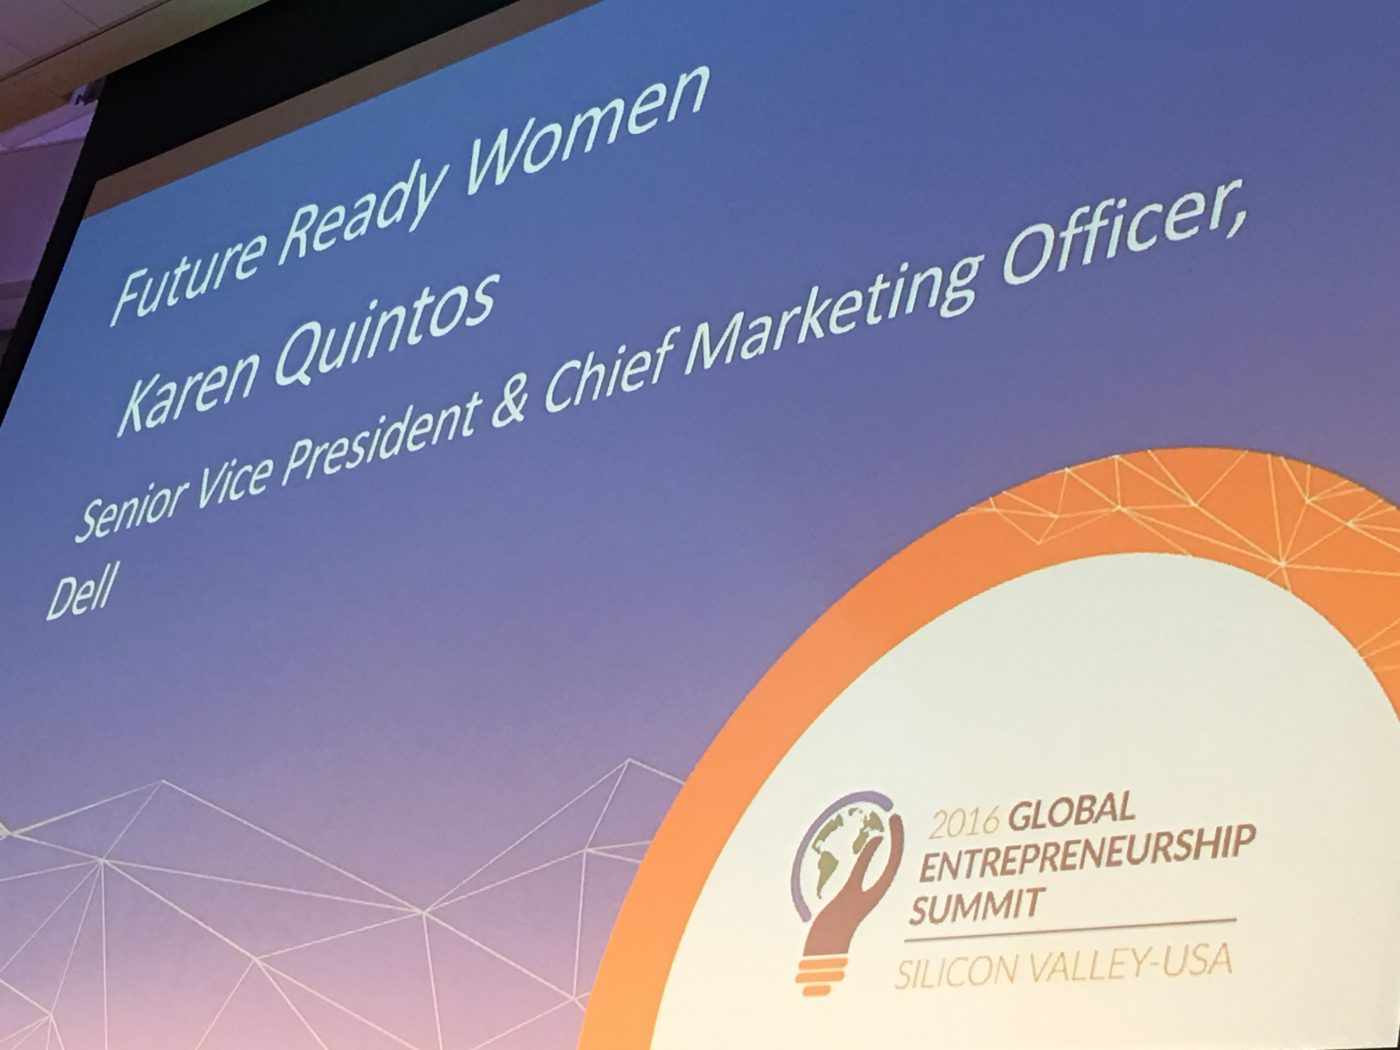 GES2016-Future Ready Women sign